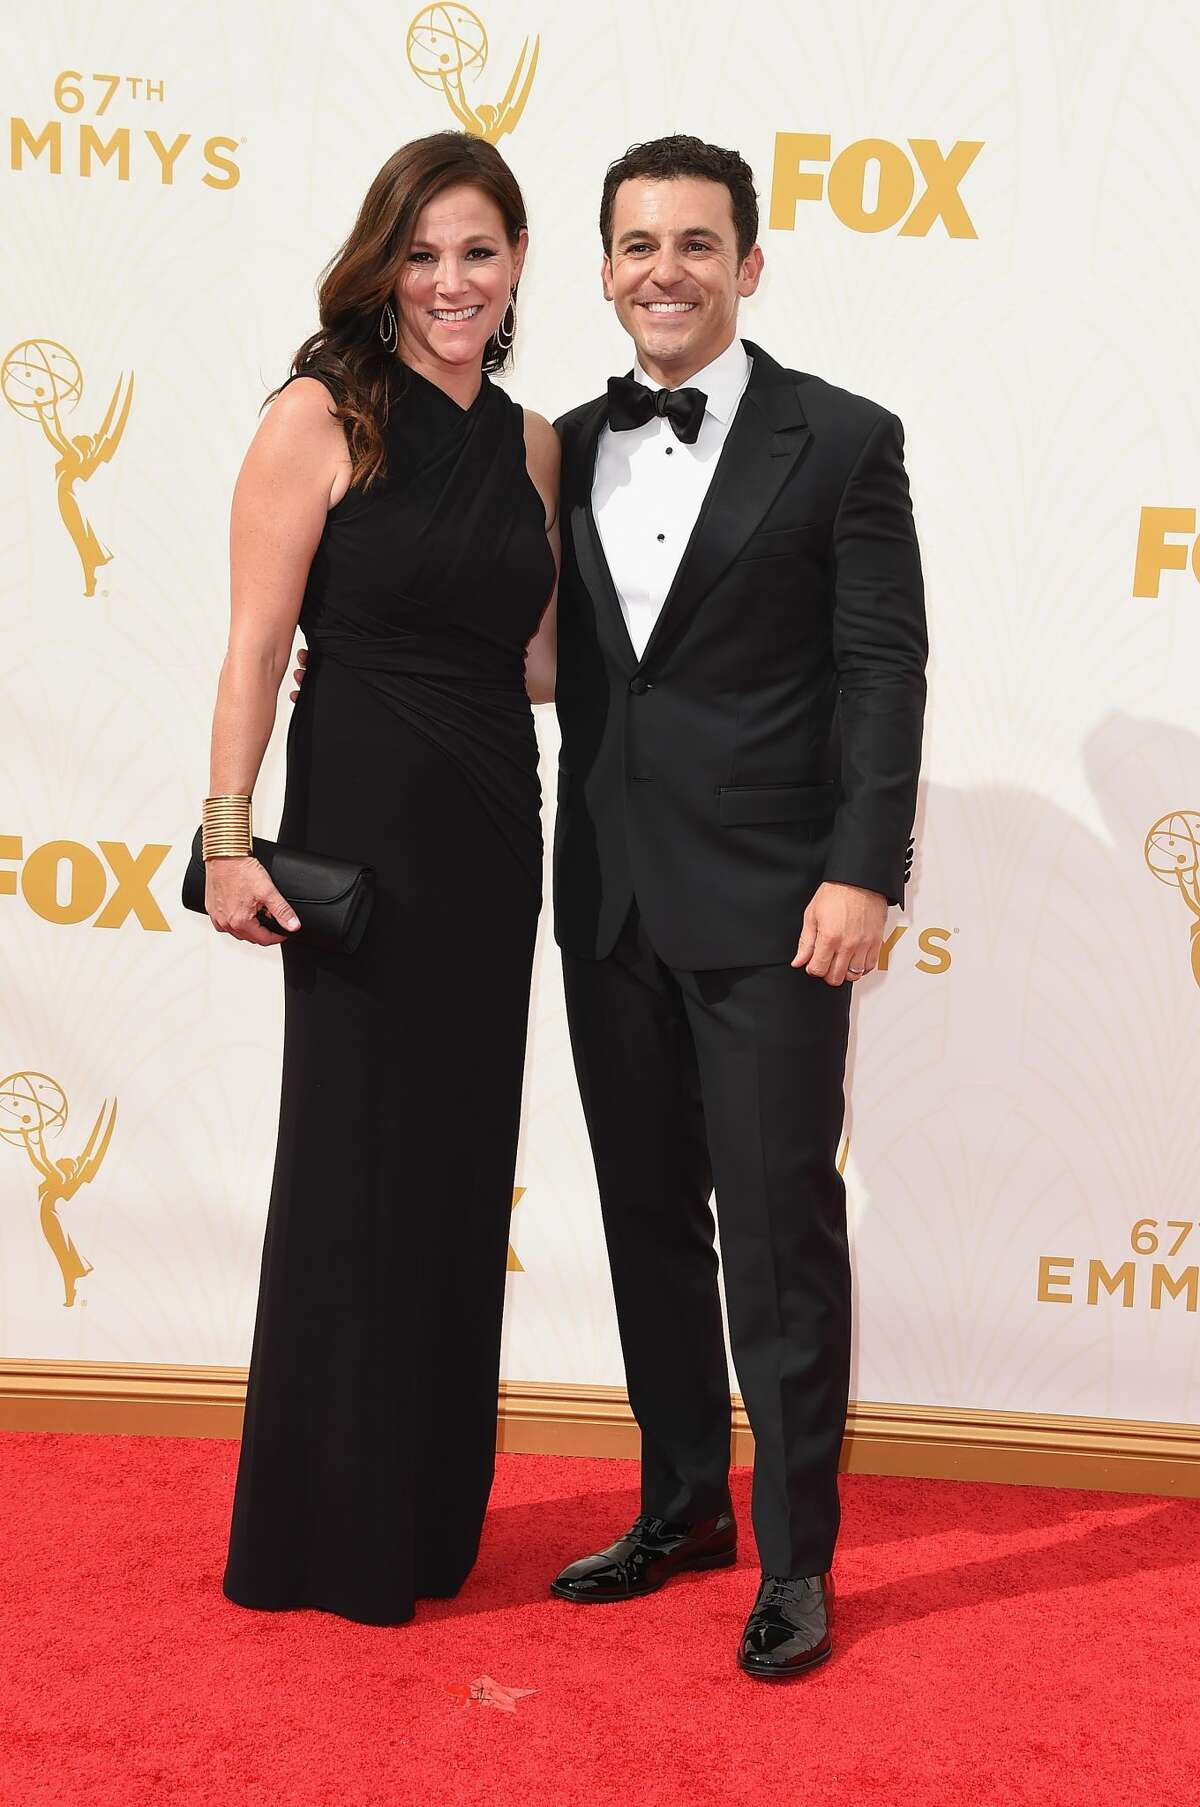 Now: Fred Savage (right) is still acting, but he has since added directing and producing to his resume. His most recent project was with Rob Lowe on The Grinder. Here he is with his wife Jennifer Lynn Stone attending the 67th Annual Primetime Emmy Awards at Microsoft Theater in 2015.